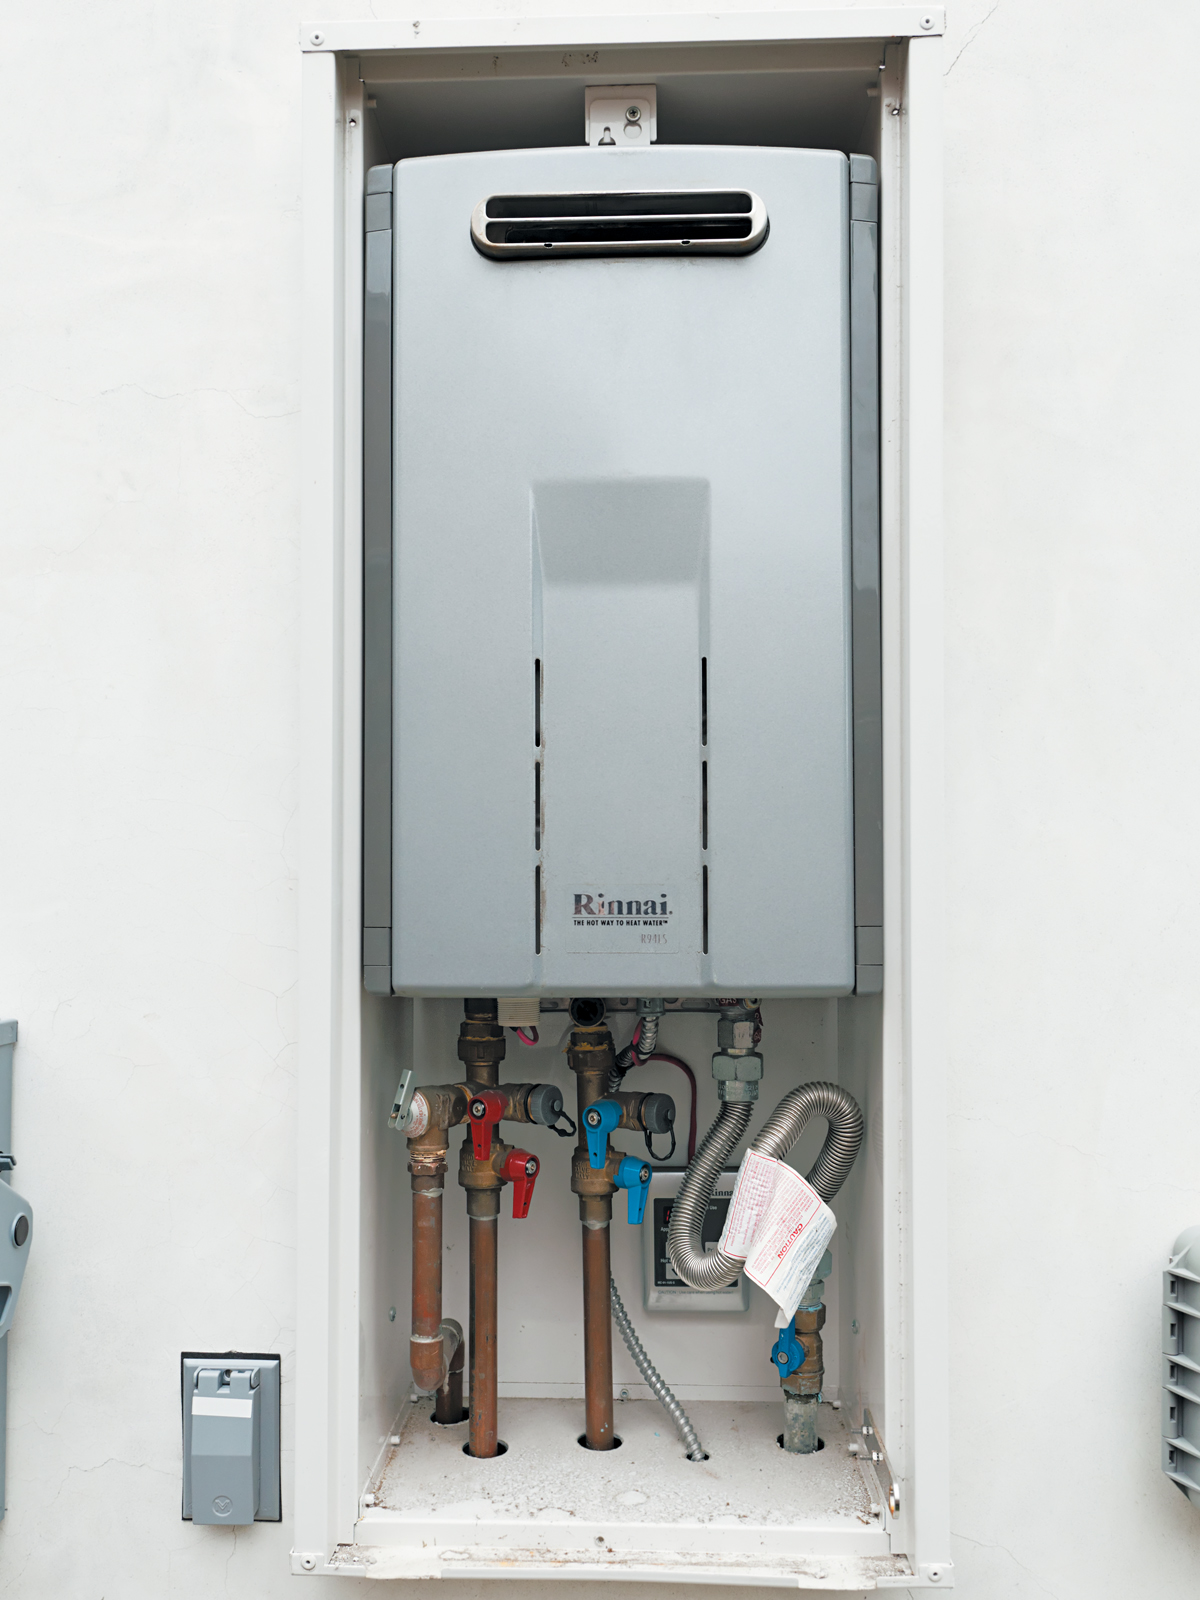 Rinnai tankless water heater and metlund D'MAND recirculating pump